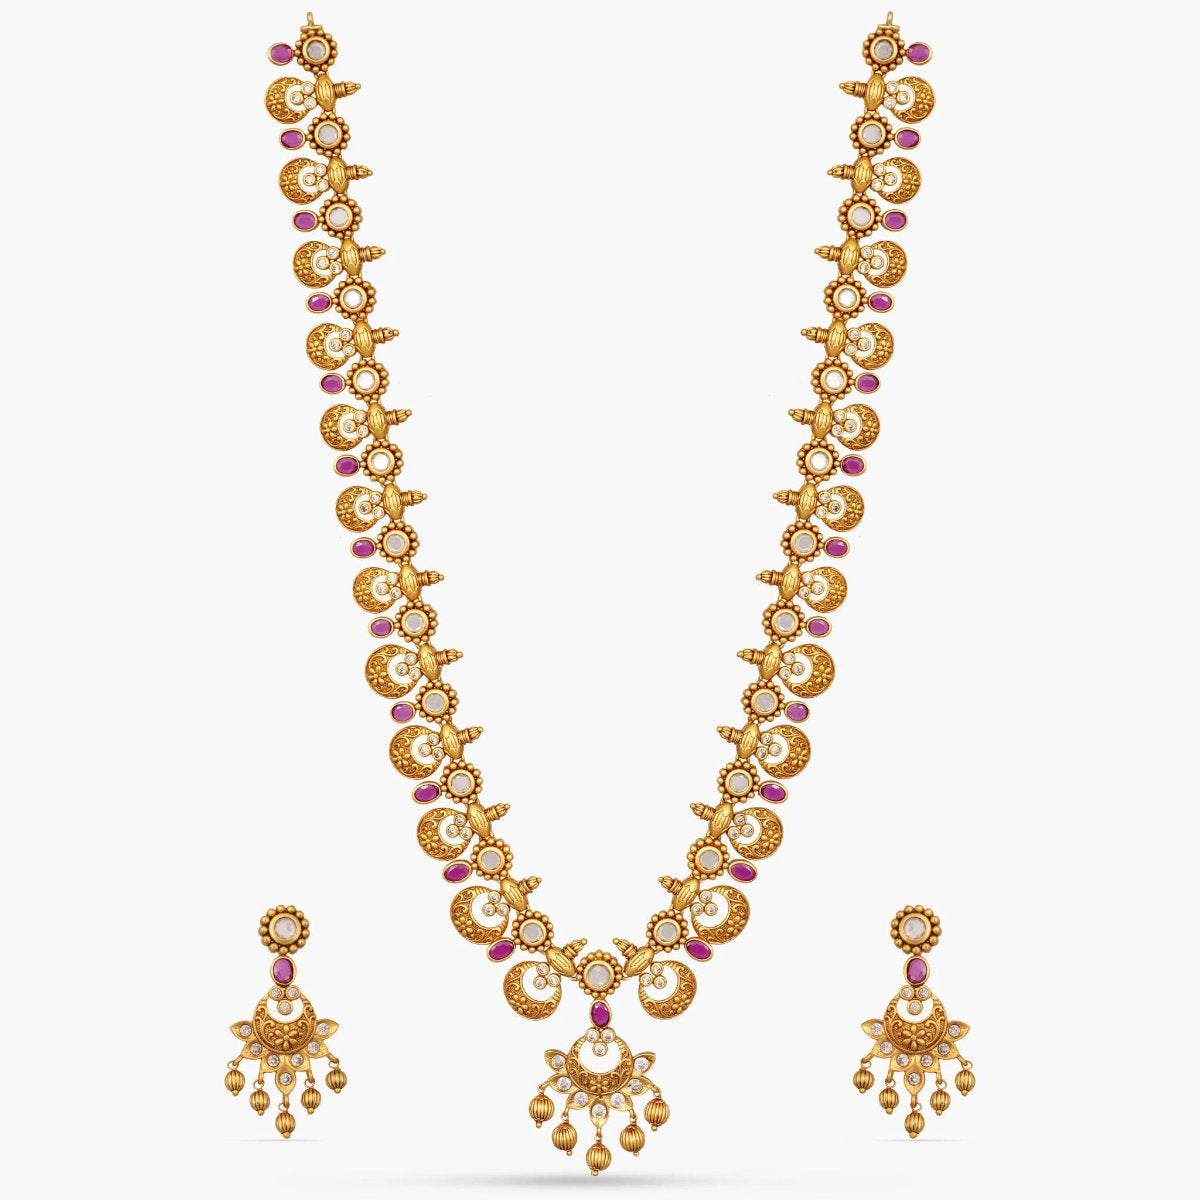 Moon Antique Long Necklace Set